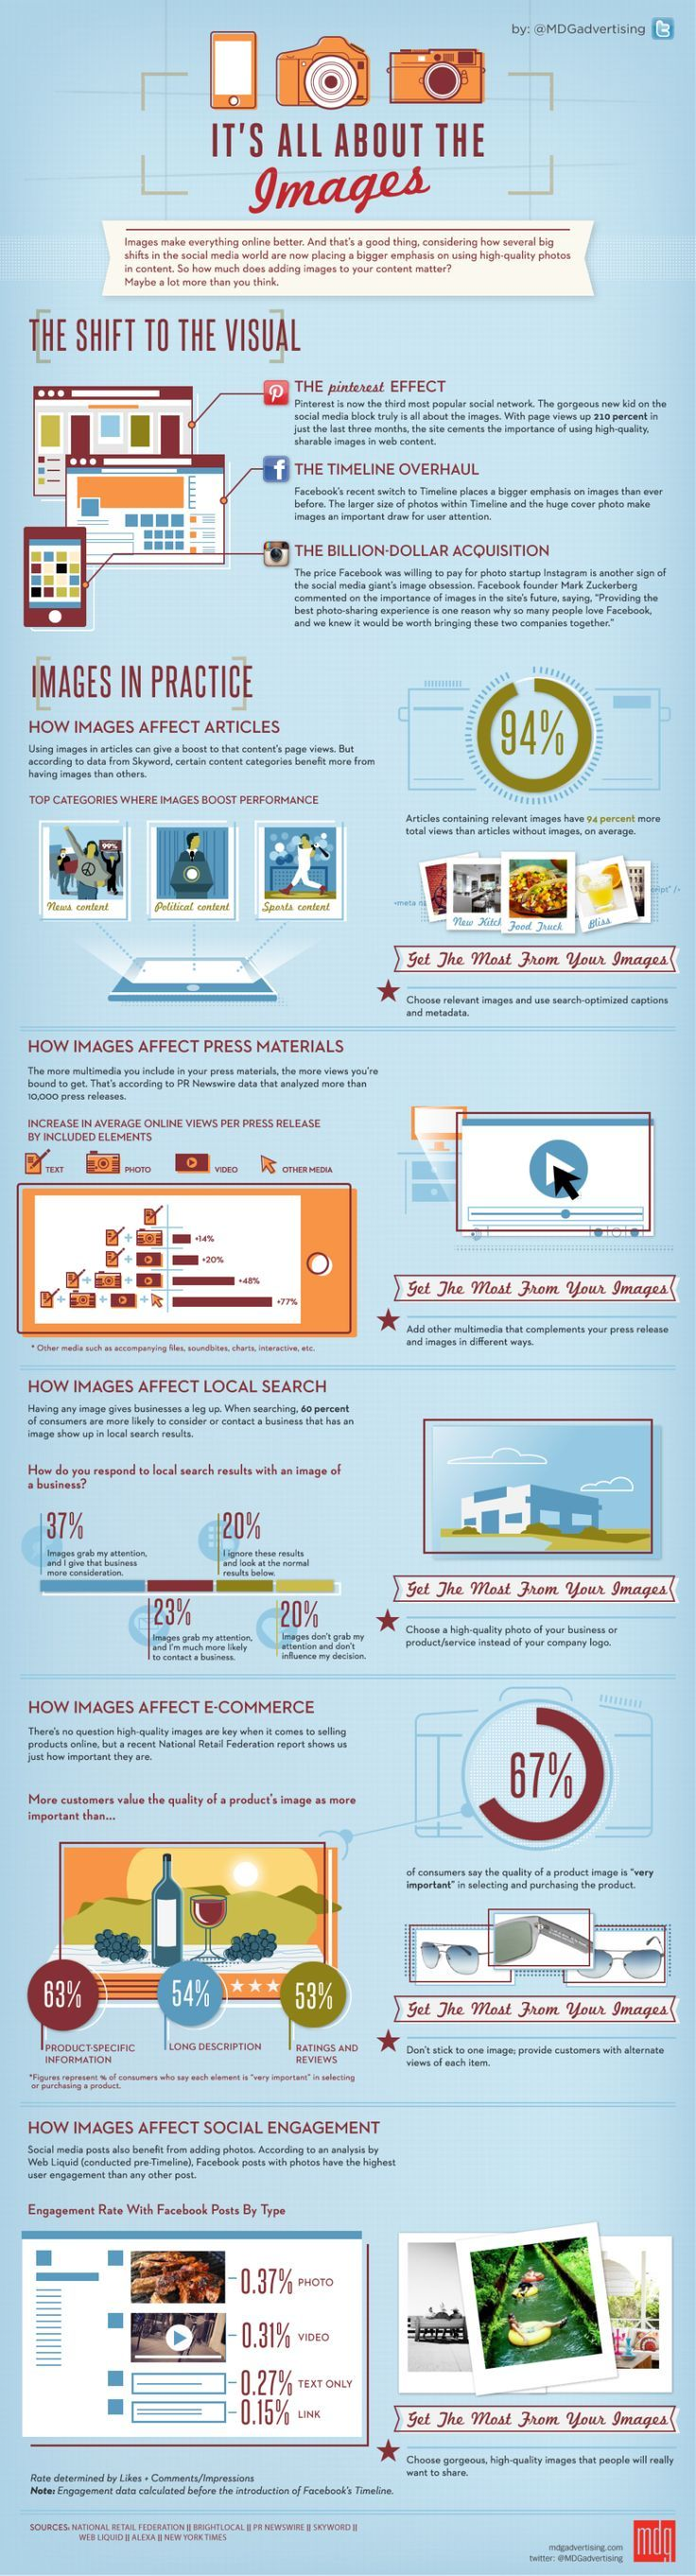 Impact of Images on Social Media